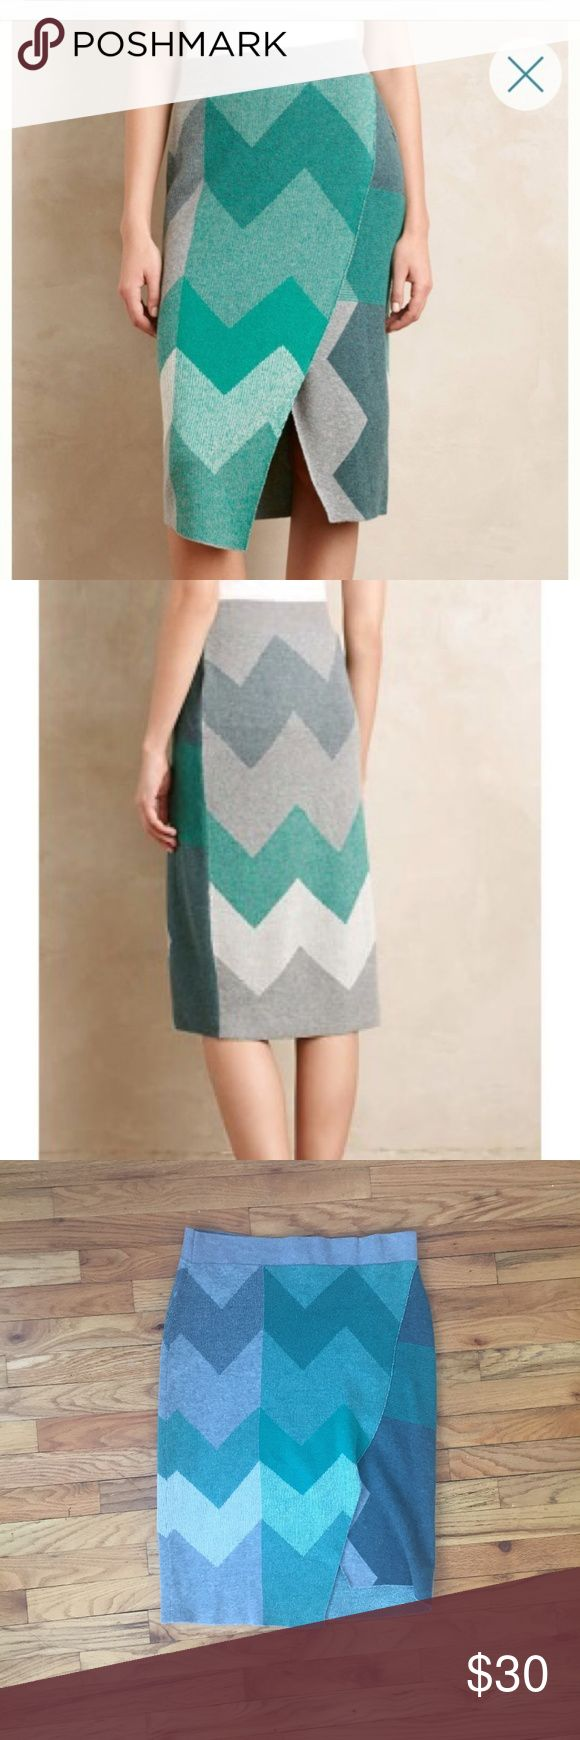 Anthropologie Moth Green Grey Chevron Skirt Length: 27 in | Waist: 34 in |  Great condition! Please ask if you have any questions :)                                                      #soft cozy comfy high waist trendy Anthropologie Skirts Pencil